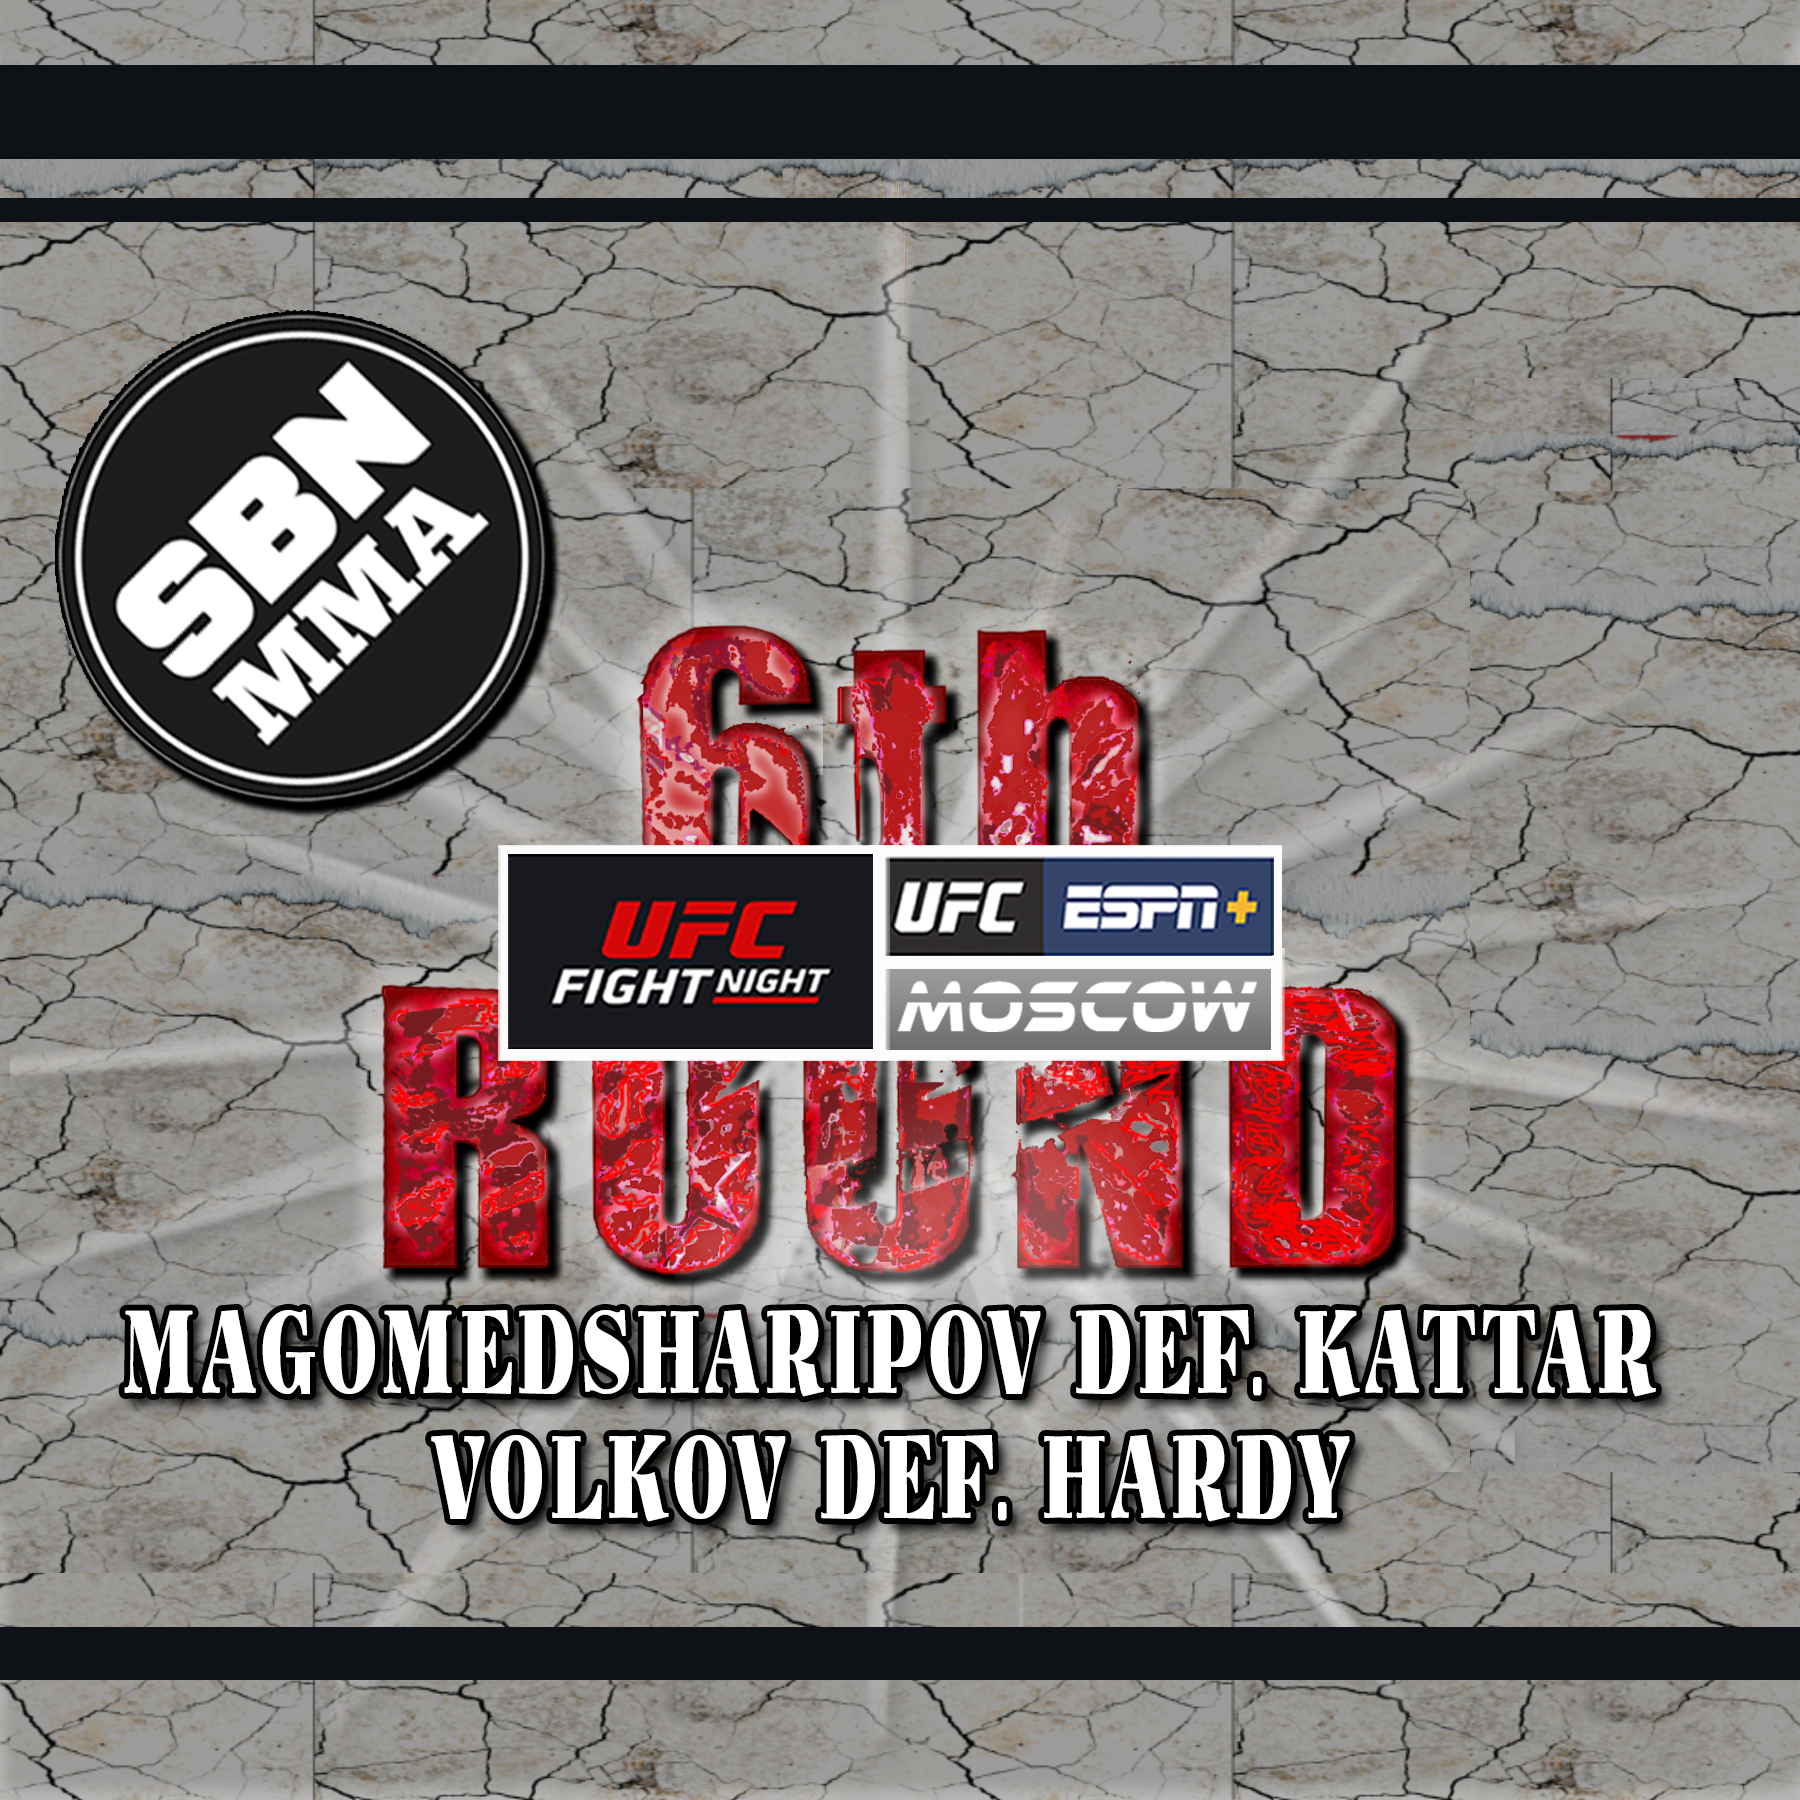 6th Rd, The 6th Round SBN MMA Post-Fight Show, UFC Moscow, UFC on ESPN+ 21, Magomedsharipov vs Kattar, UFC Results